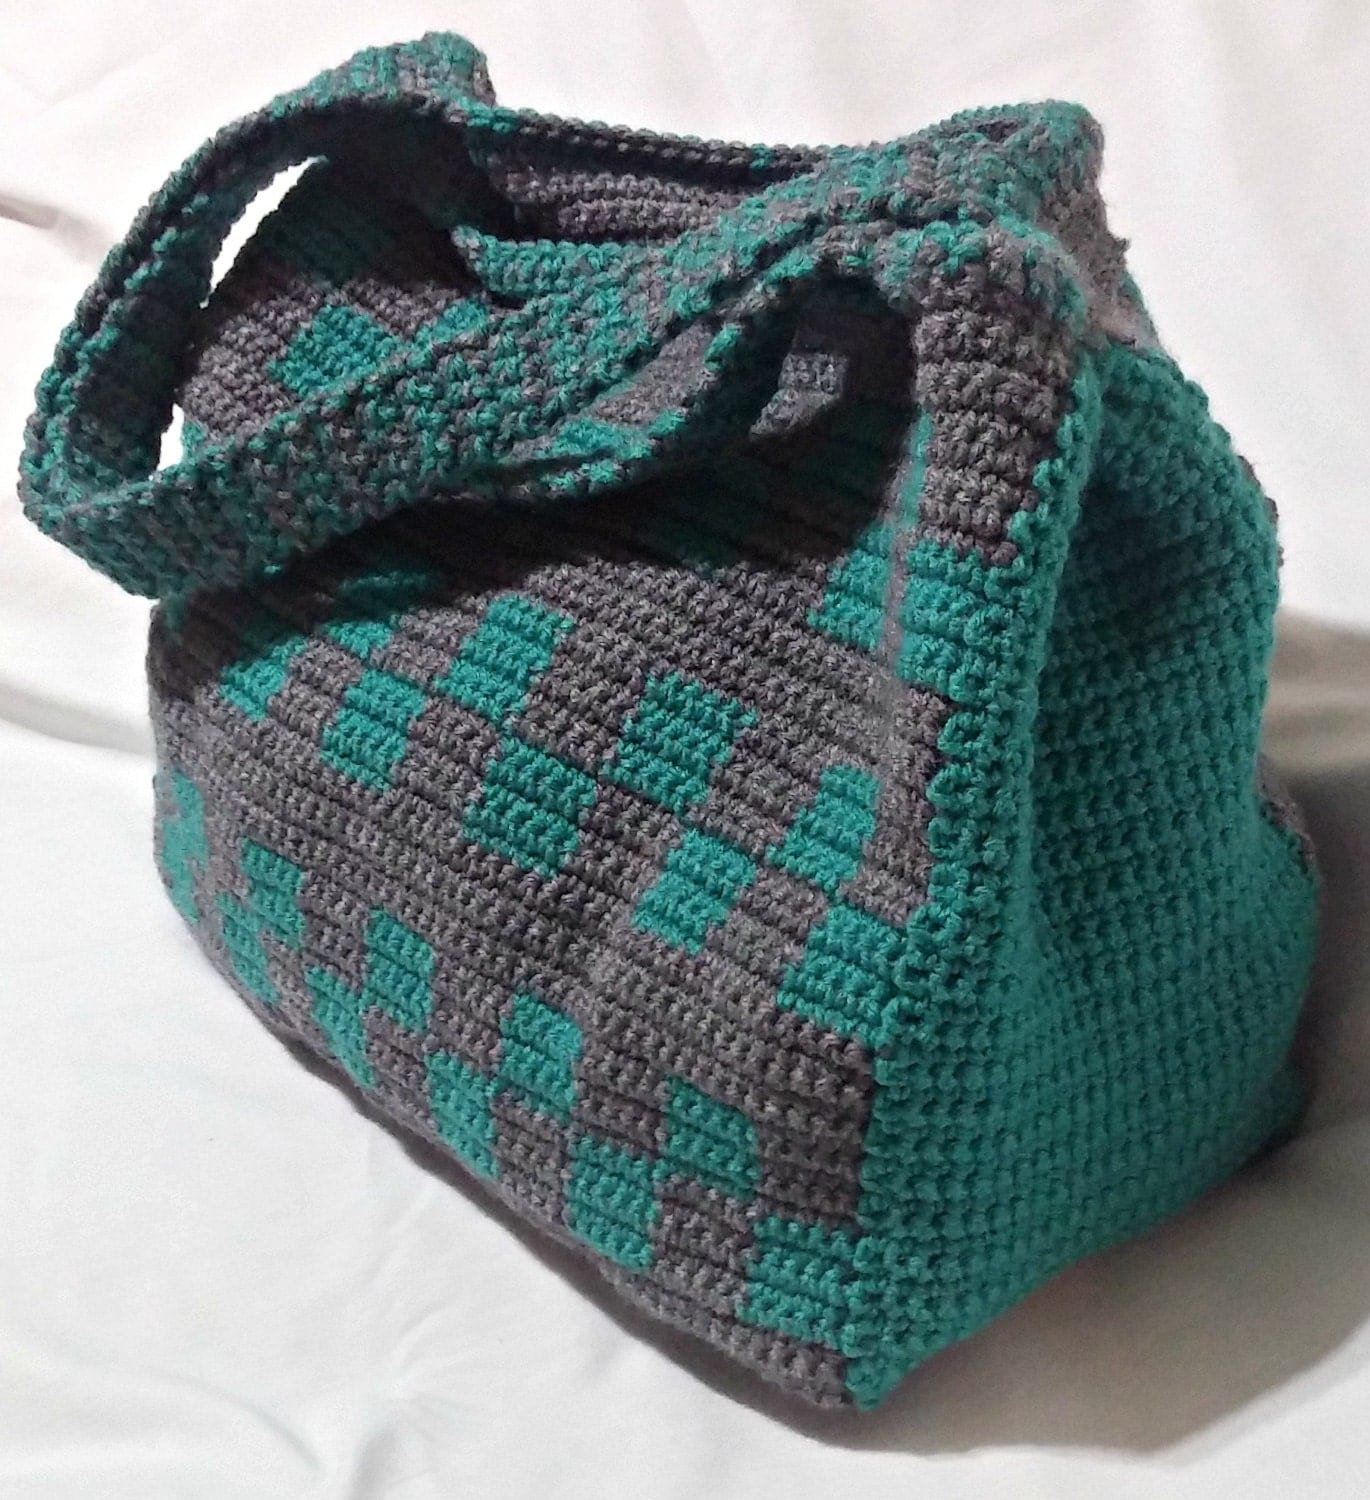 PATTERN: Crochet Tote Bag Pattern Teal and Grey Tote Large